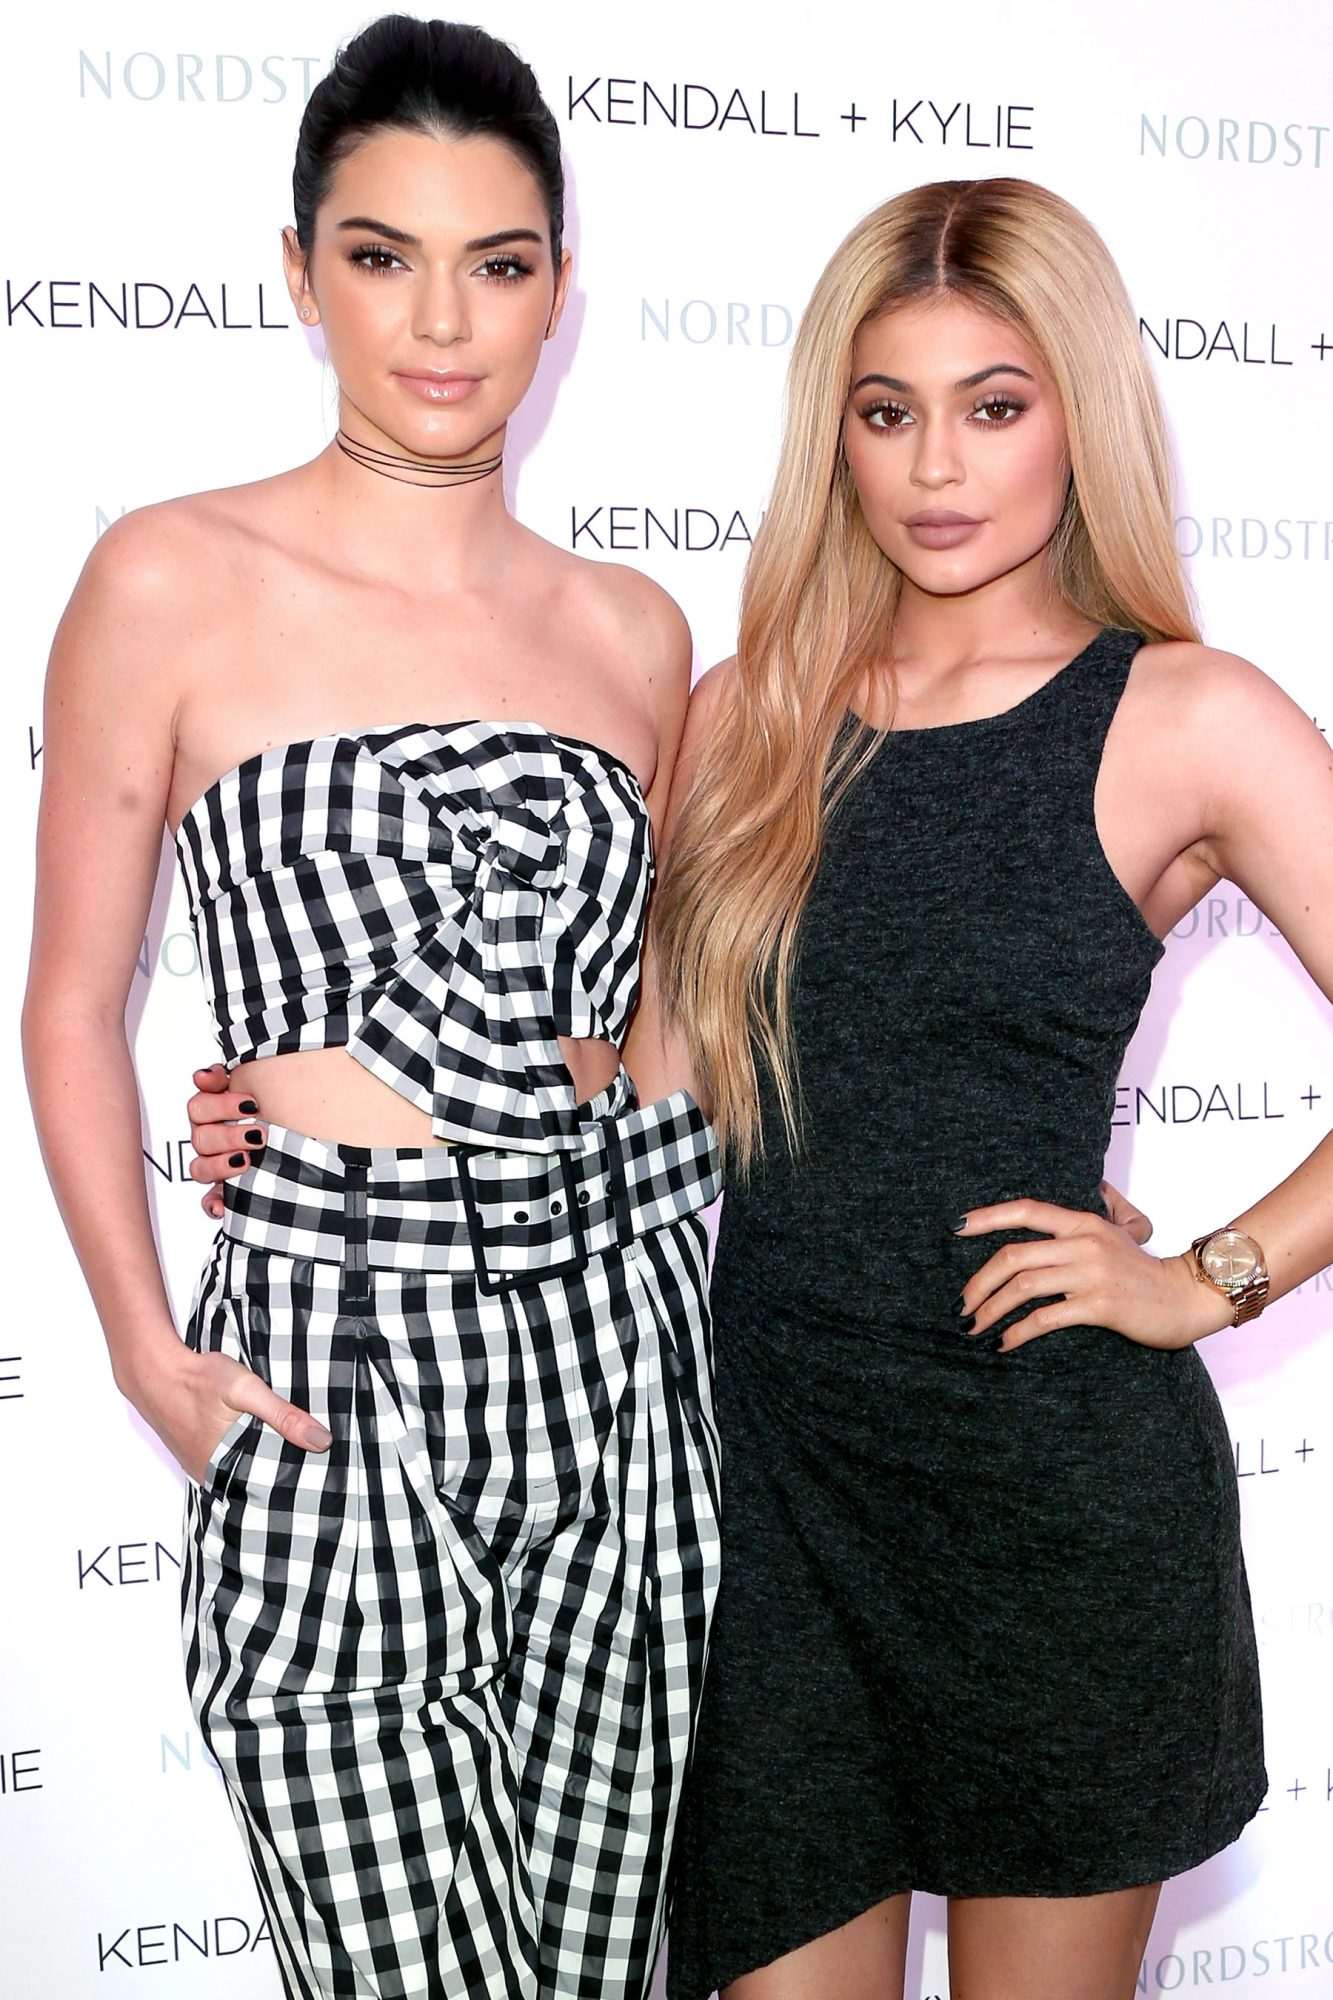 Kendall And Kylie Jenner Celebrate Kendall + Kylie Collection At Nordstrom Private Luncheon